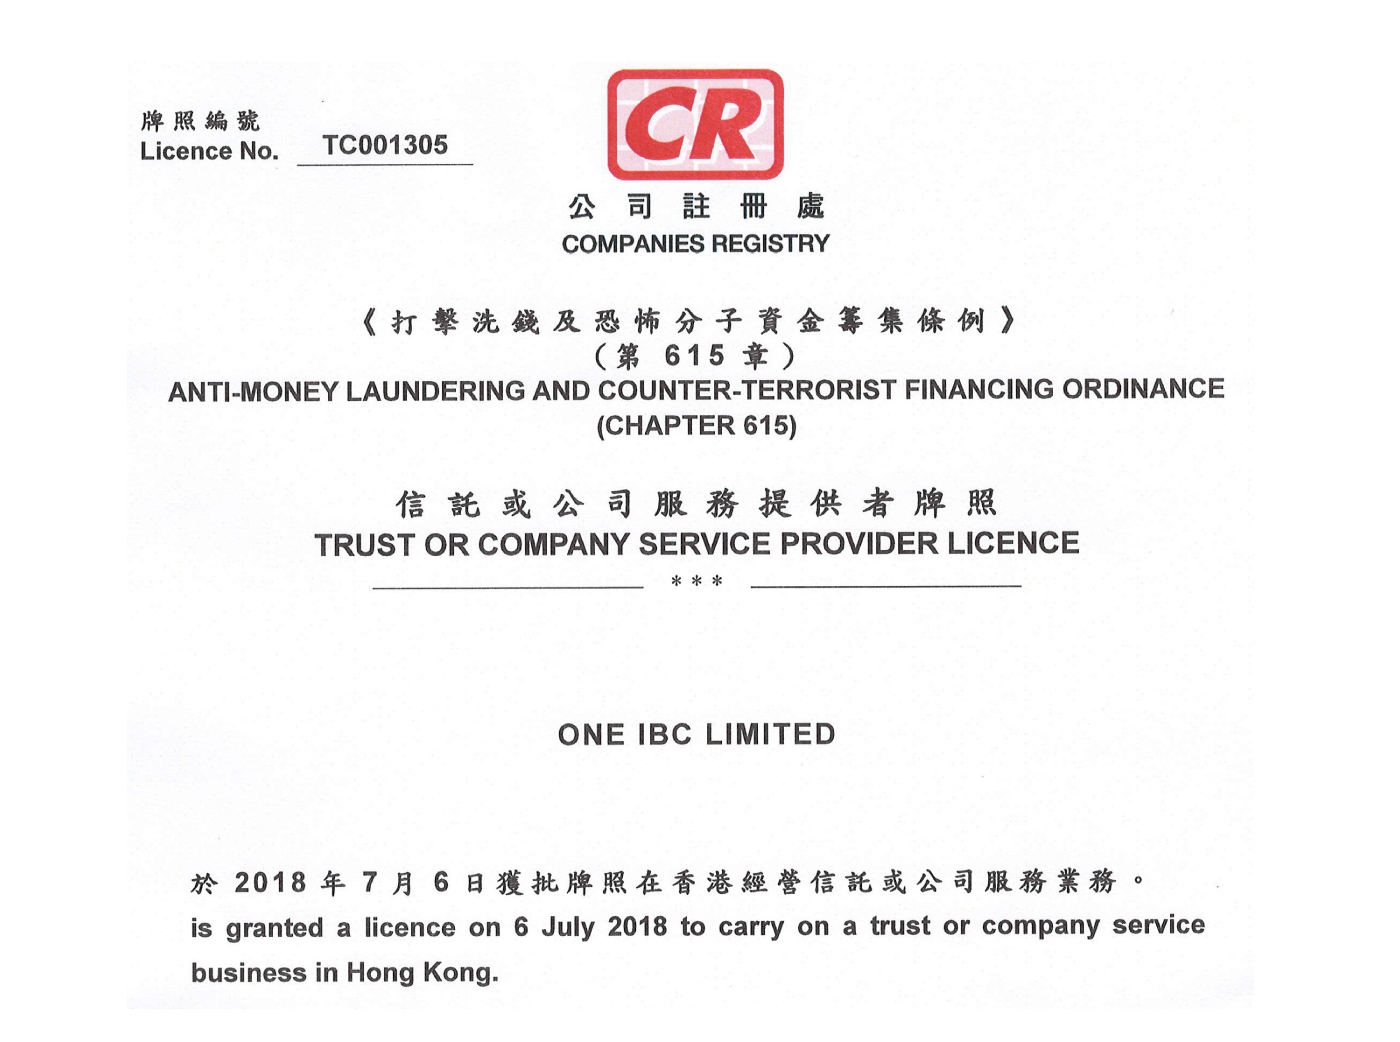 One IBC Limited (Incorporated in Hong Kong) owns The Trust or Company Service Provider License (TCSP) in Hong Kong